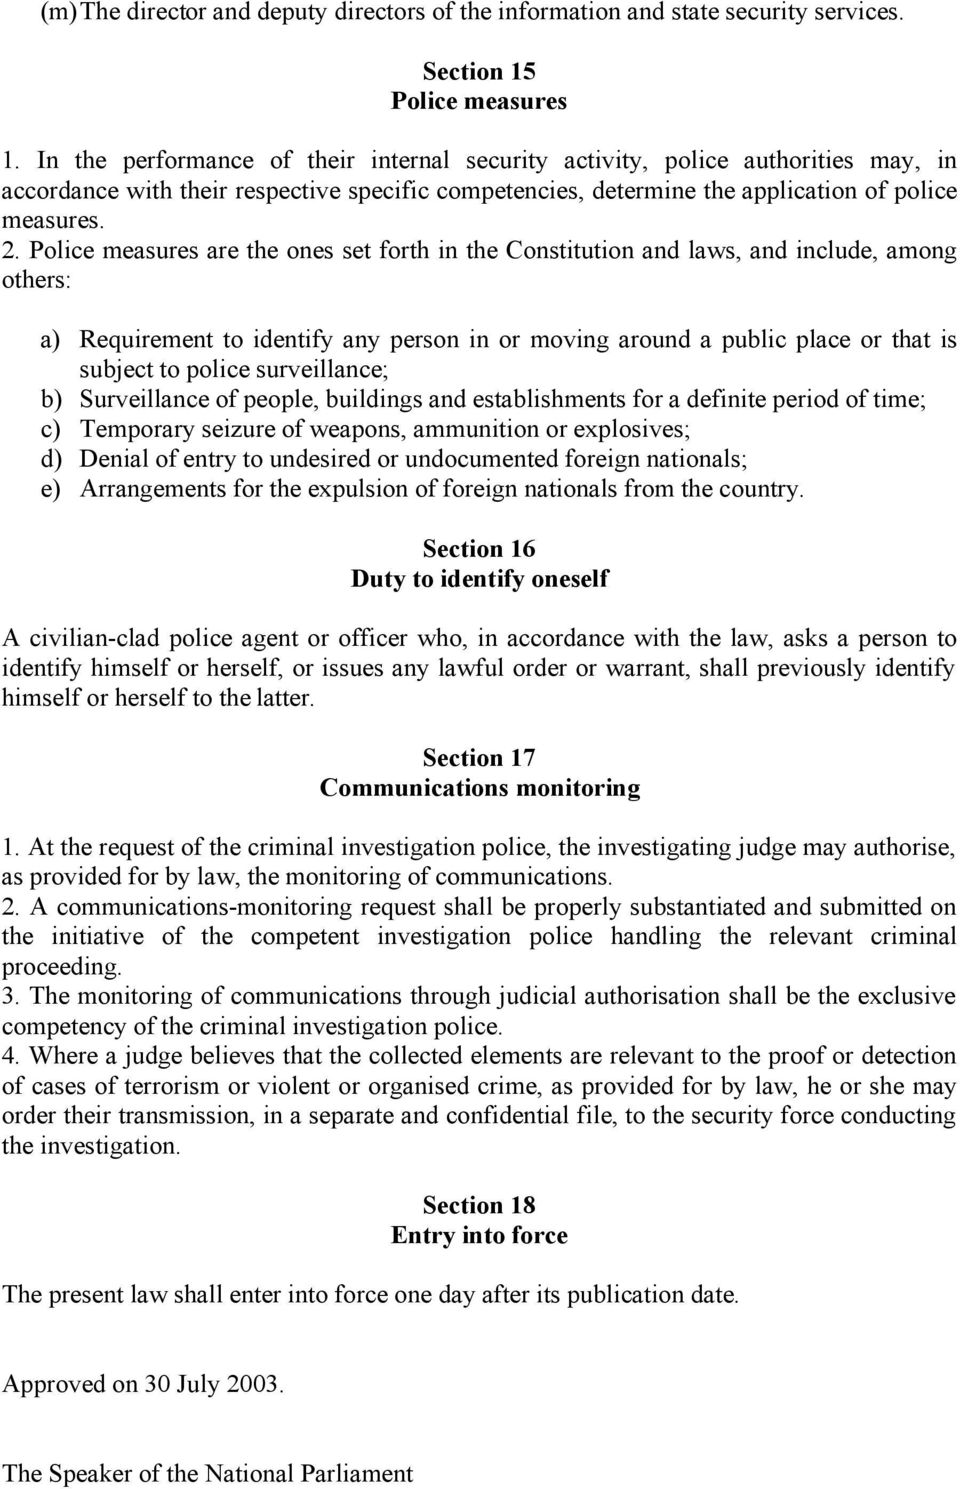 Police measures are the ones set forth in the Constitution and laws, and include, among others: a) Requirement to identify any person in or moving around a public place or that is subject to police